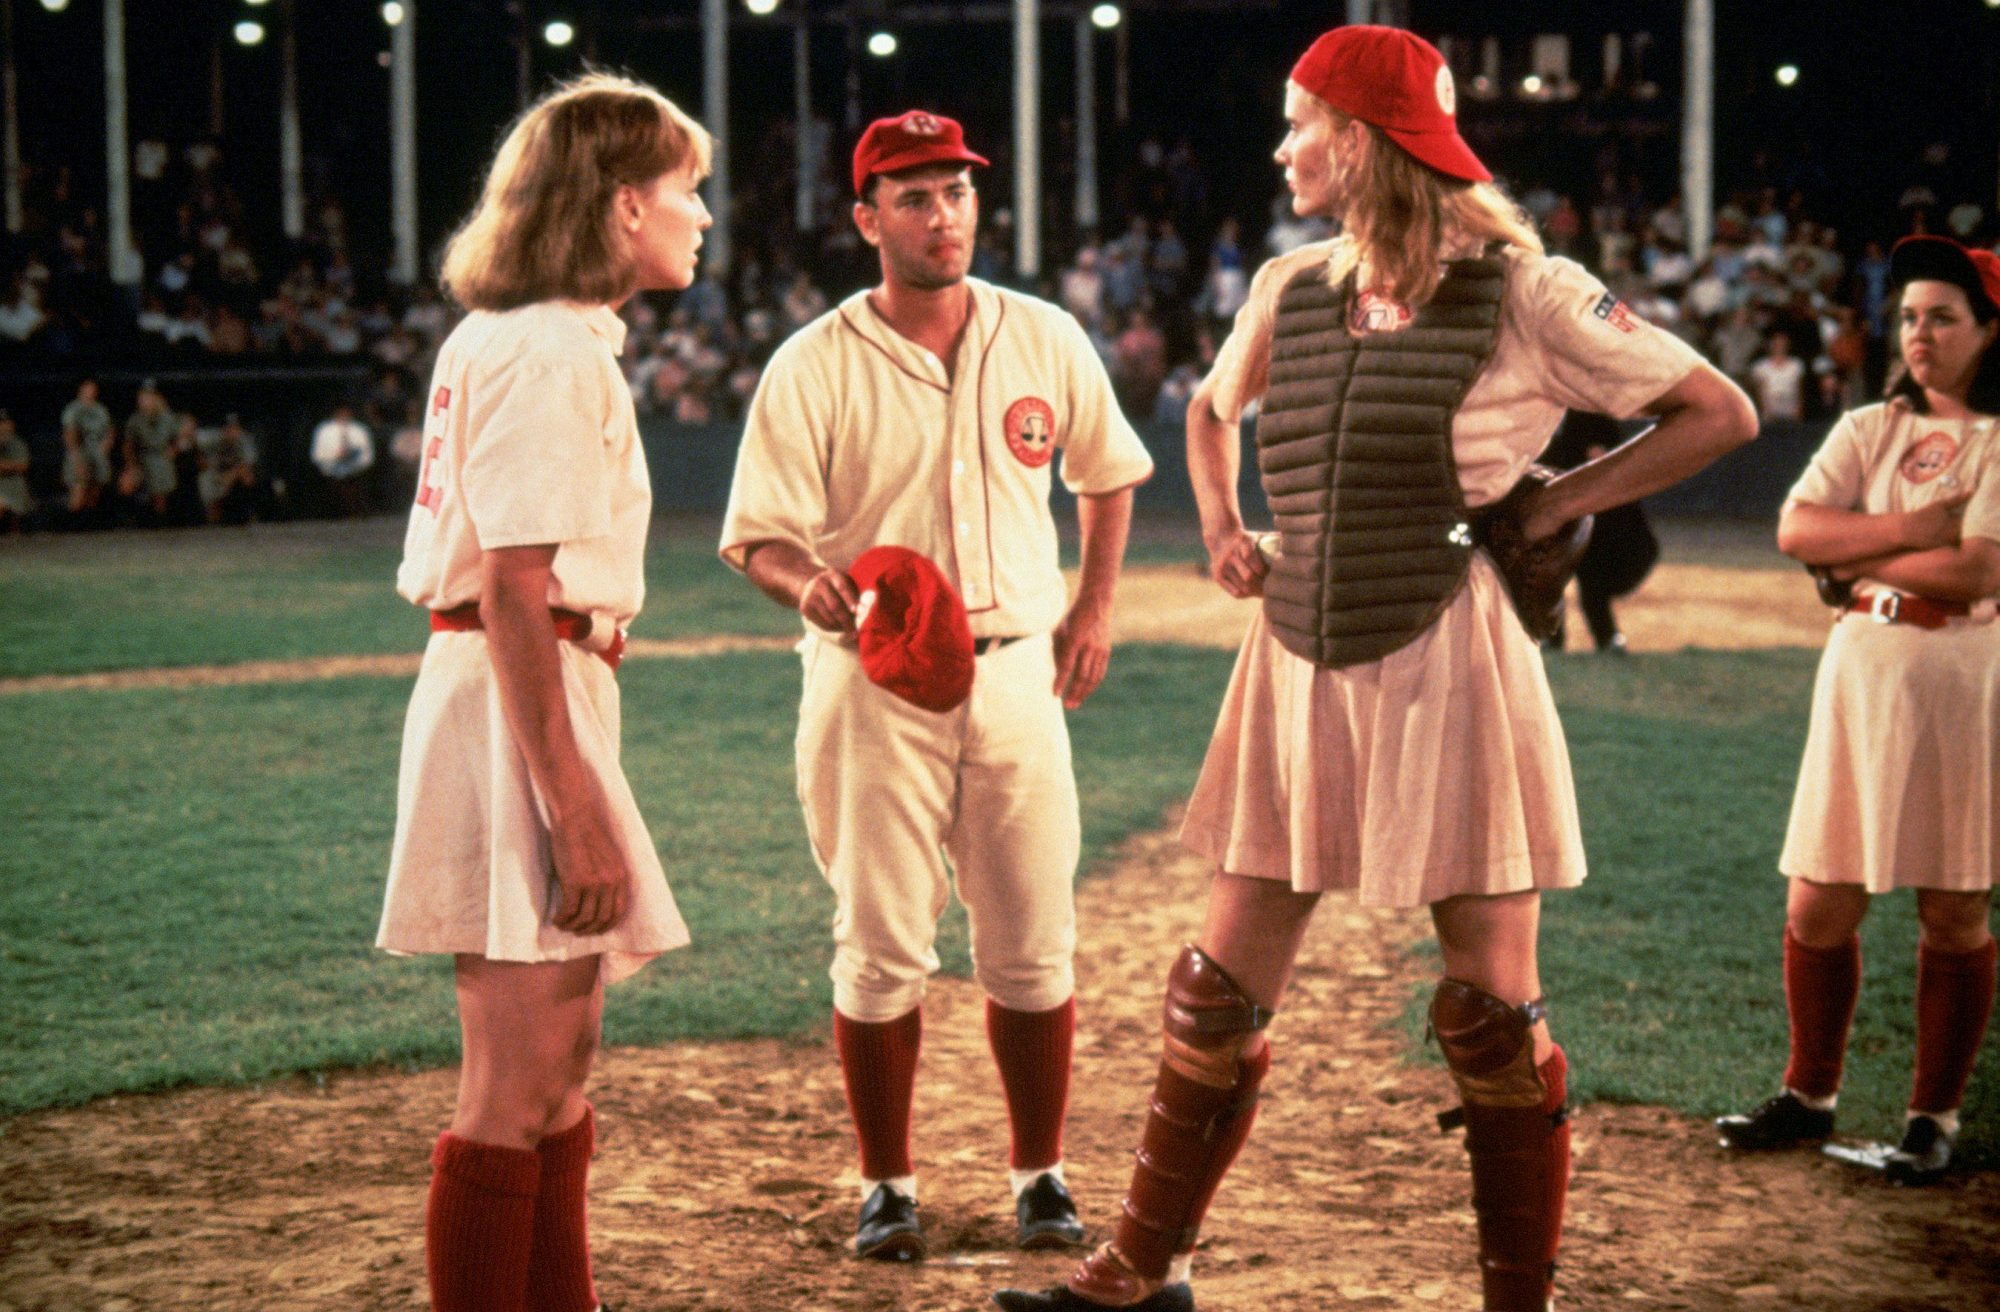 A LEAGUE OF THEIR OWN, Lori Petty, Tom Hanks, Geena Davis, Rosie O'Donnell, 1992, ©Columbia Pictures